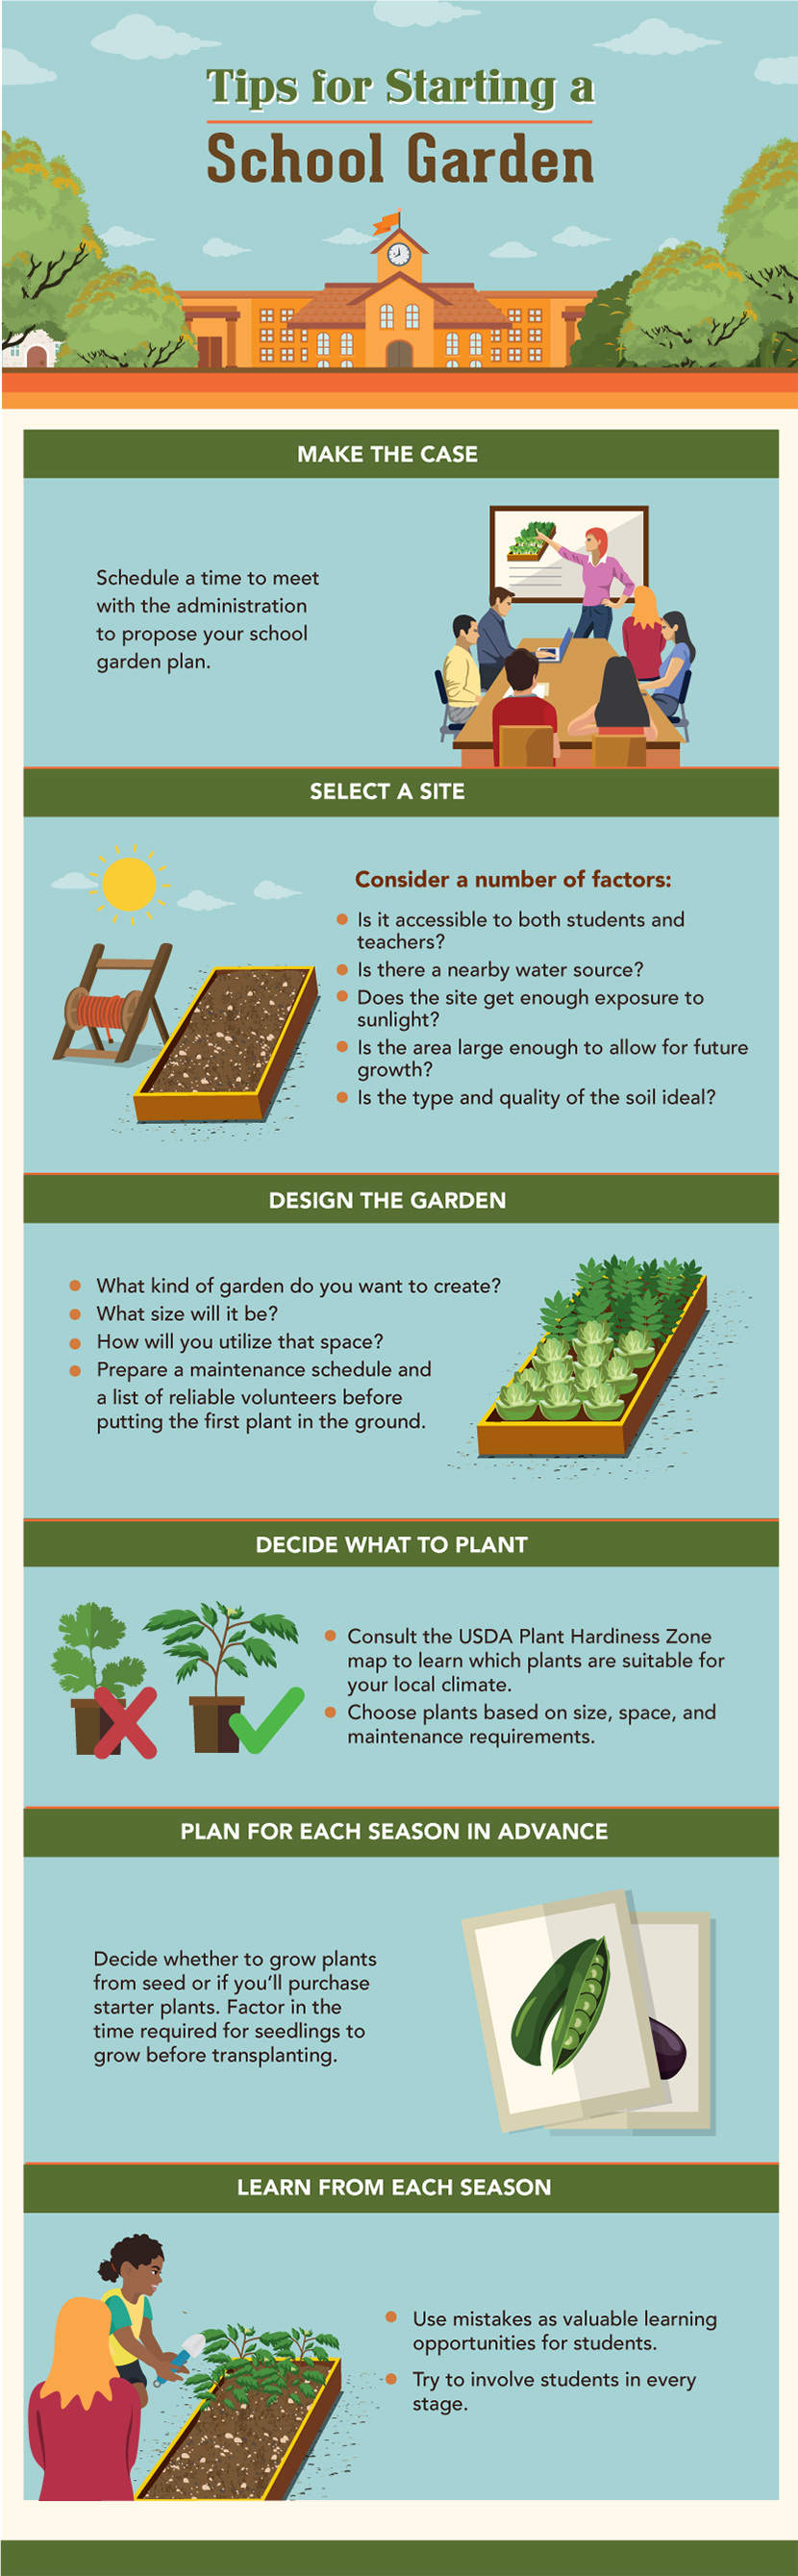 Tips for starting a school garden